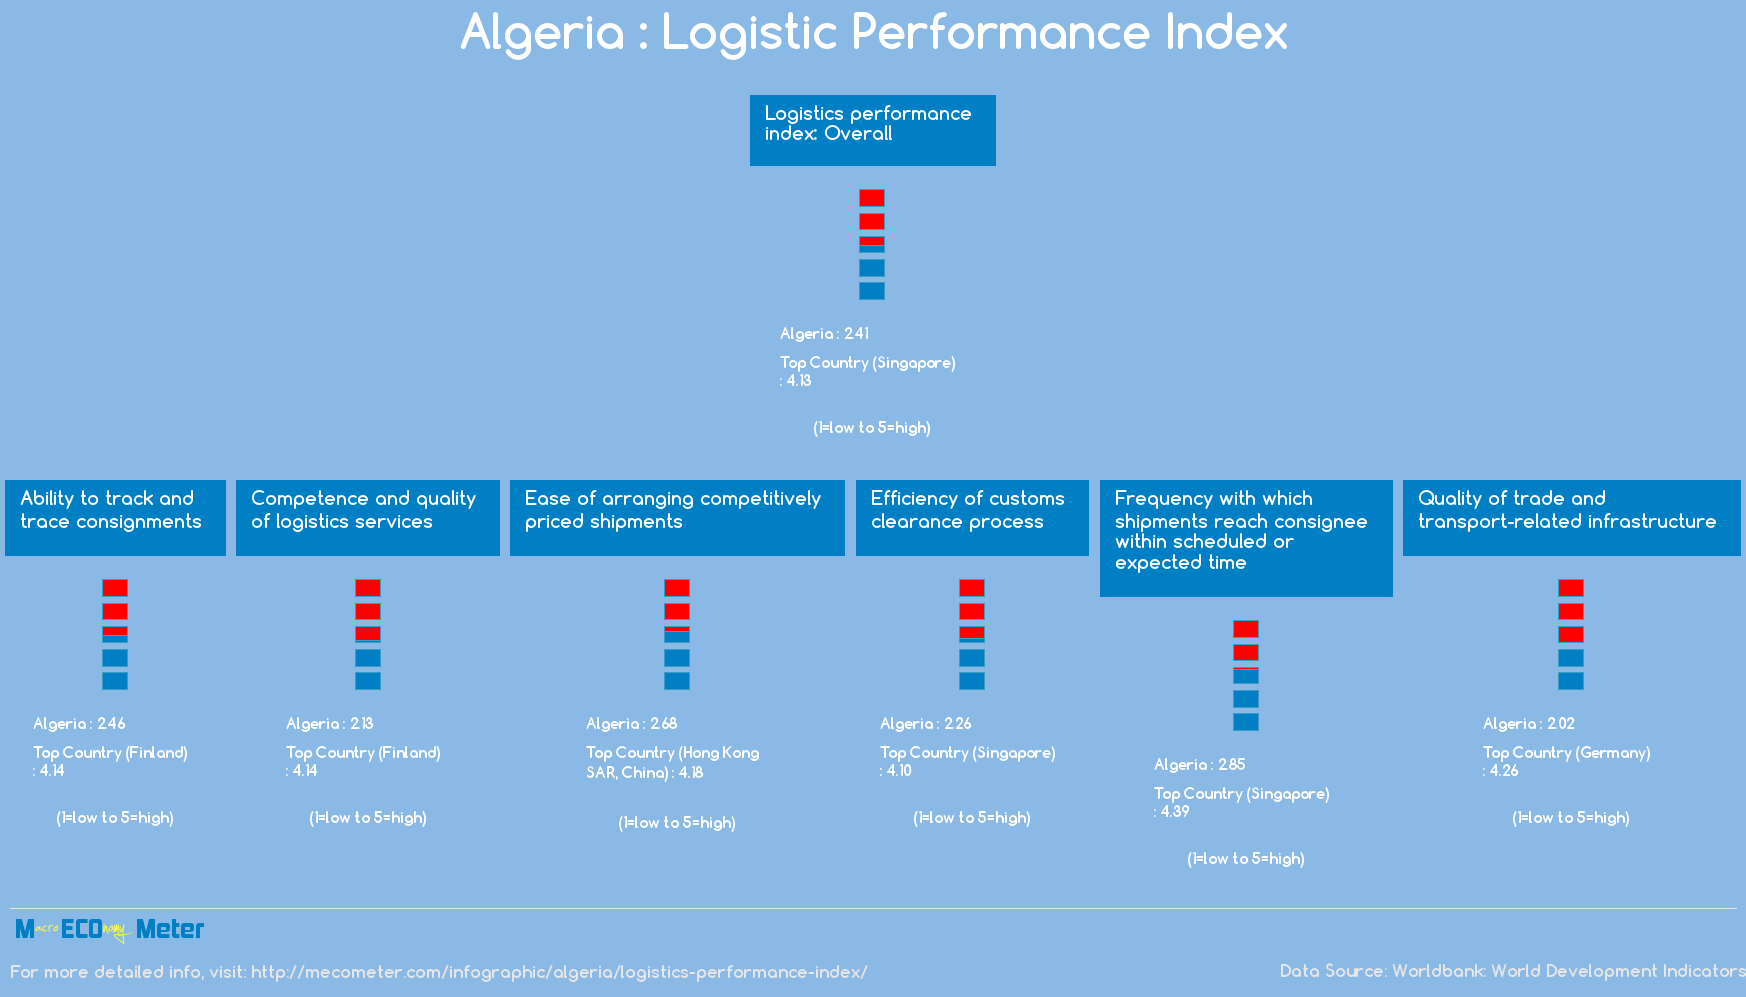 Algeria : Logistic Performance Index